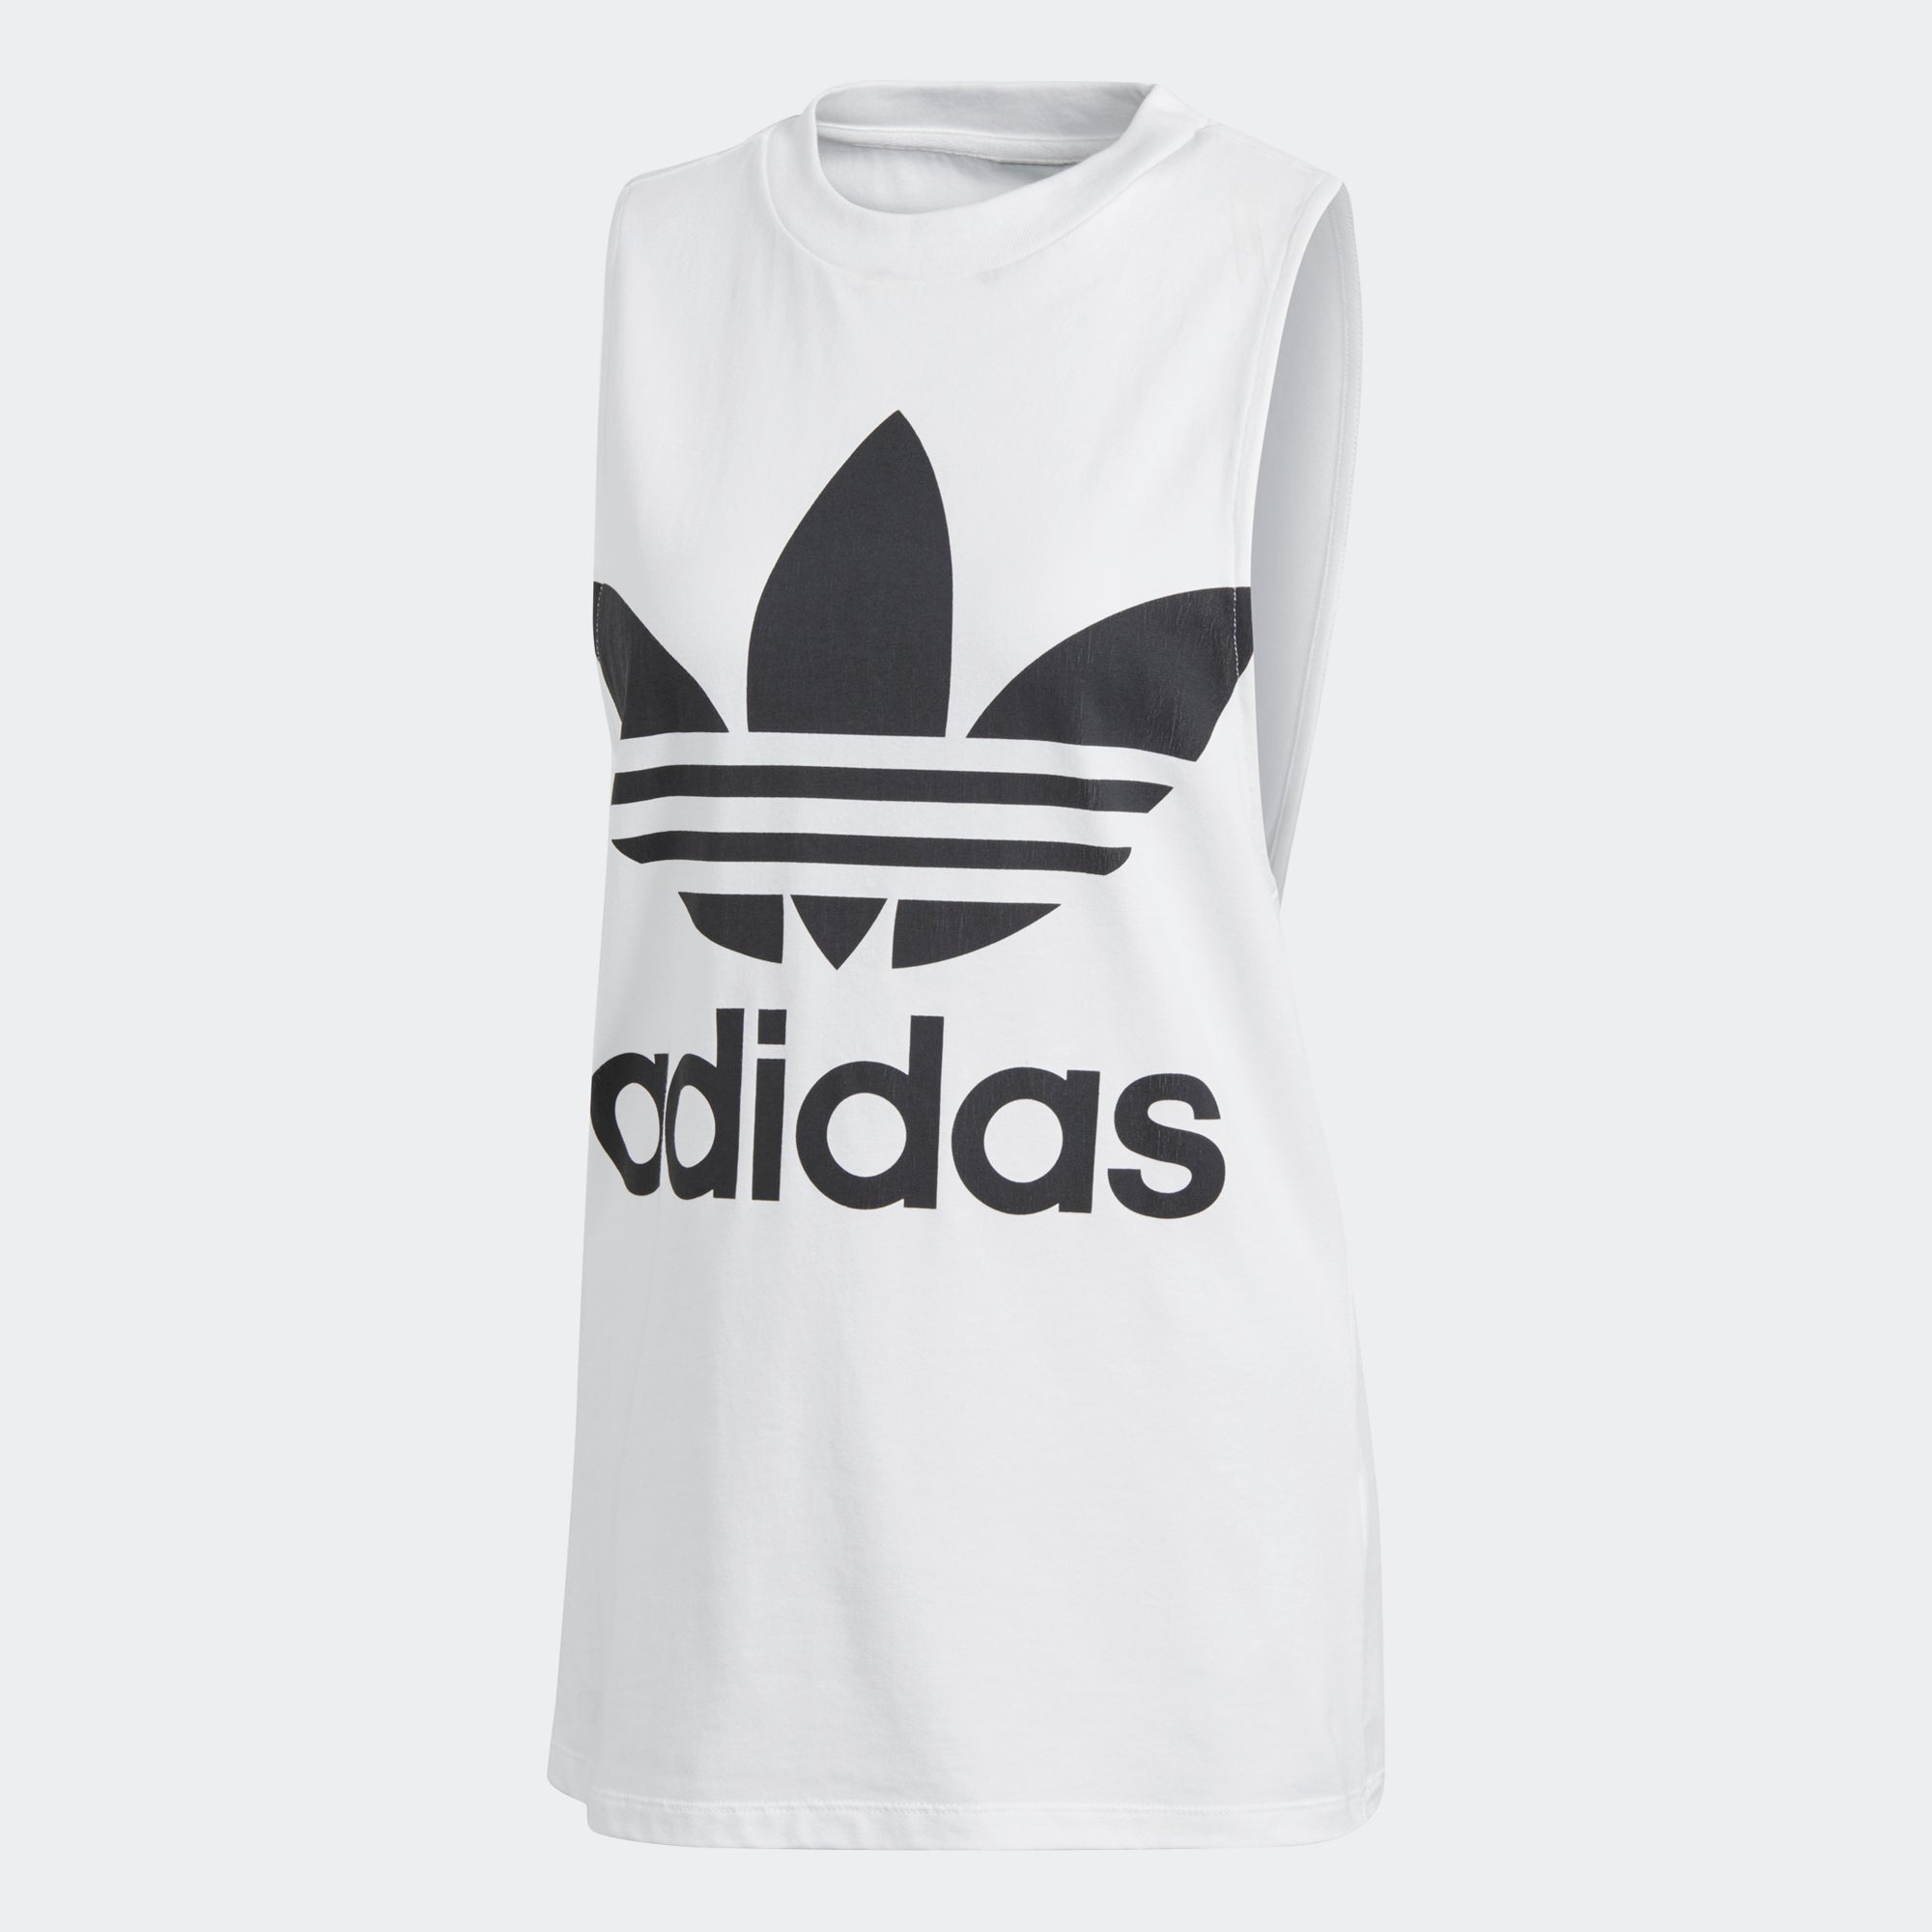 e3483c8fc74d8c Women s adidas Originals Trefoil Tank Top White with Black CE5580 ...